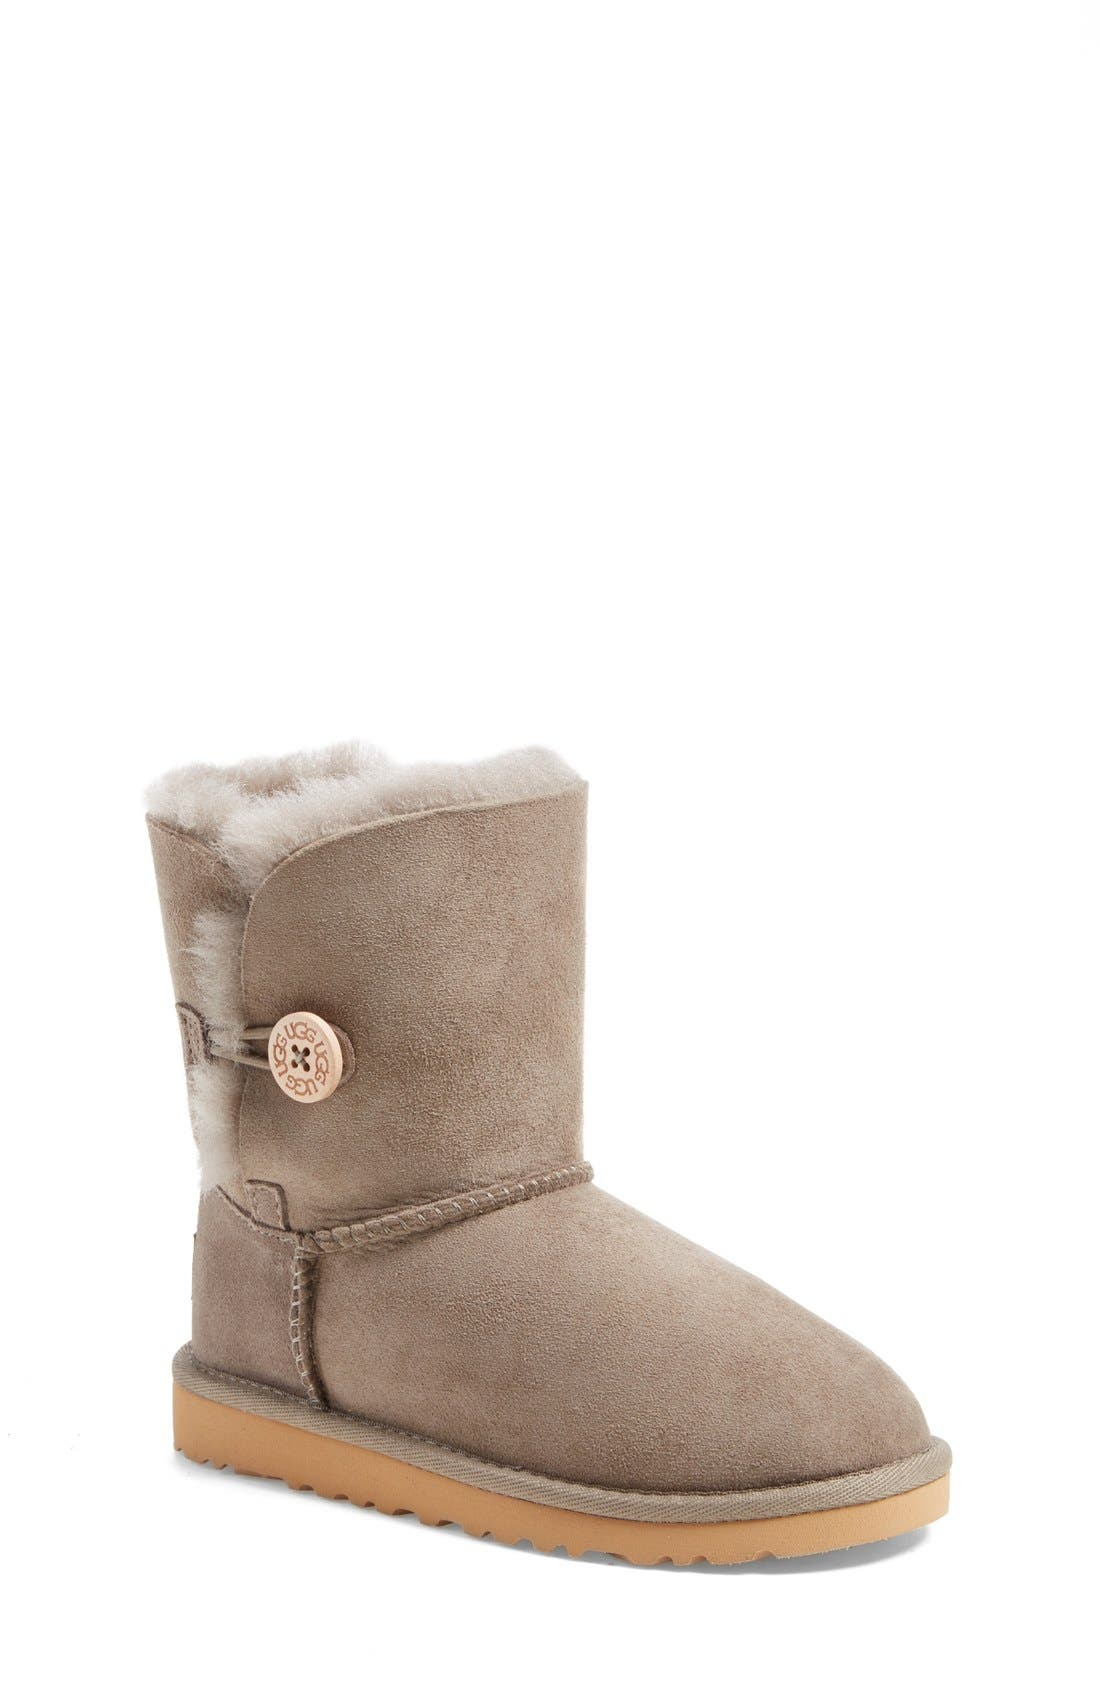 Main Image - UGG® 'Bailey Button' Boot (Walker, Toddler, Little Kid & Big Kid)